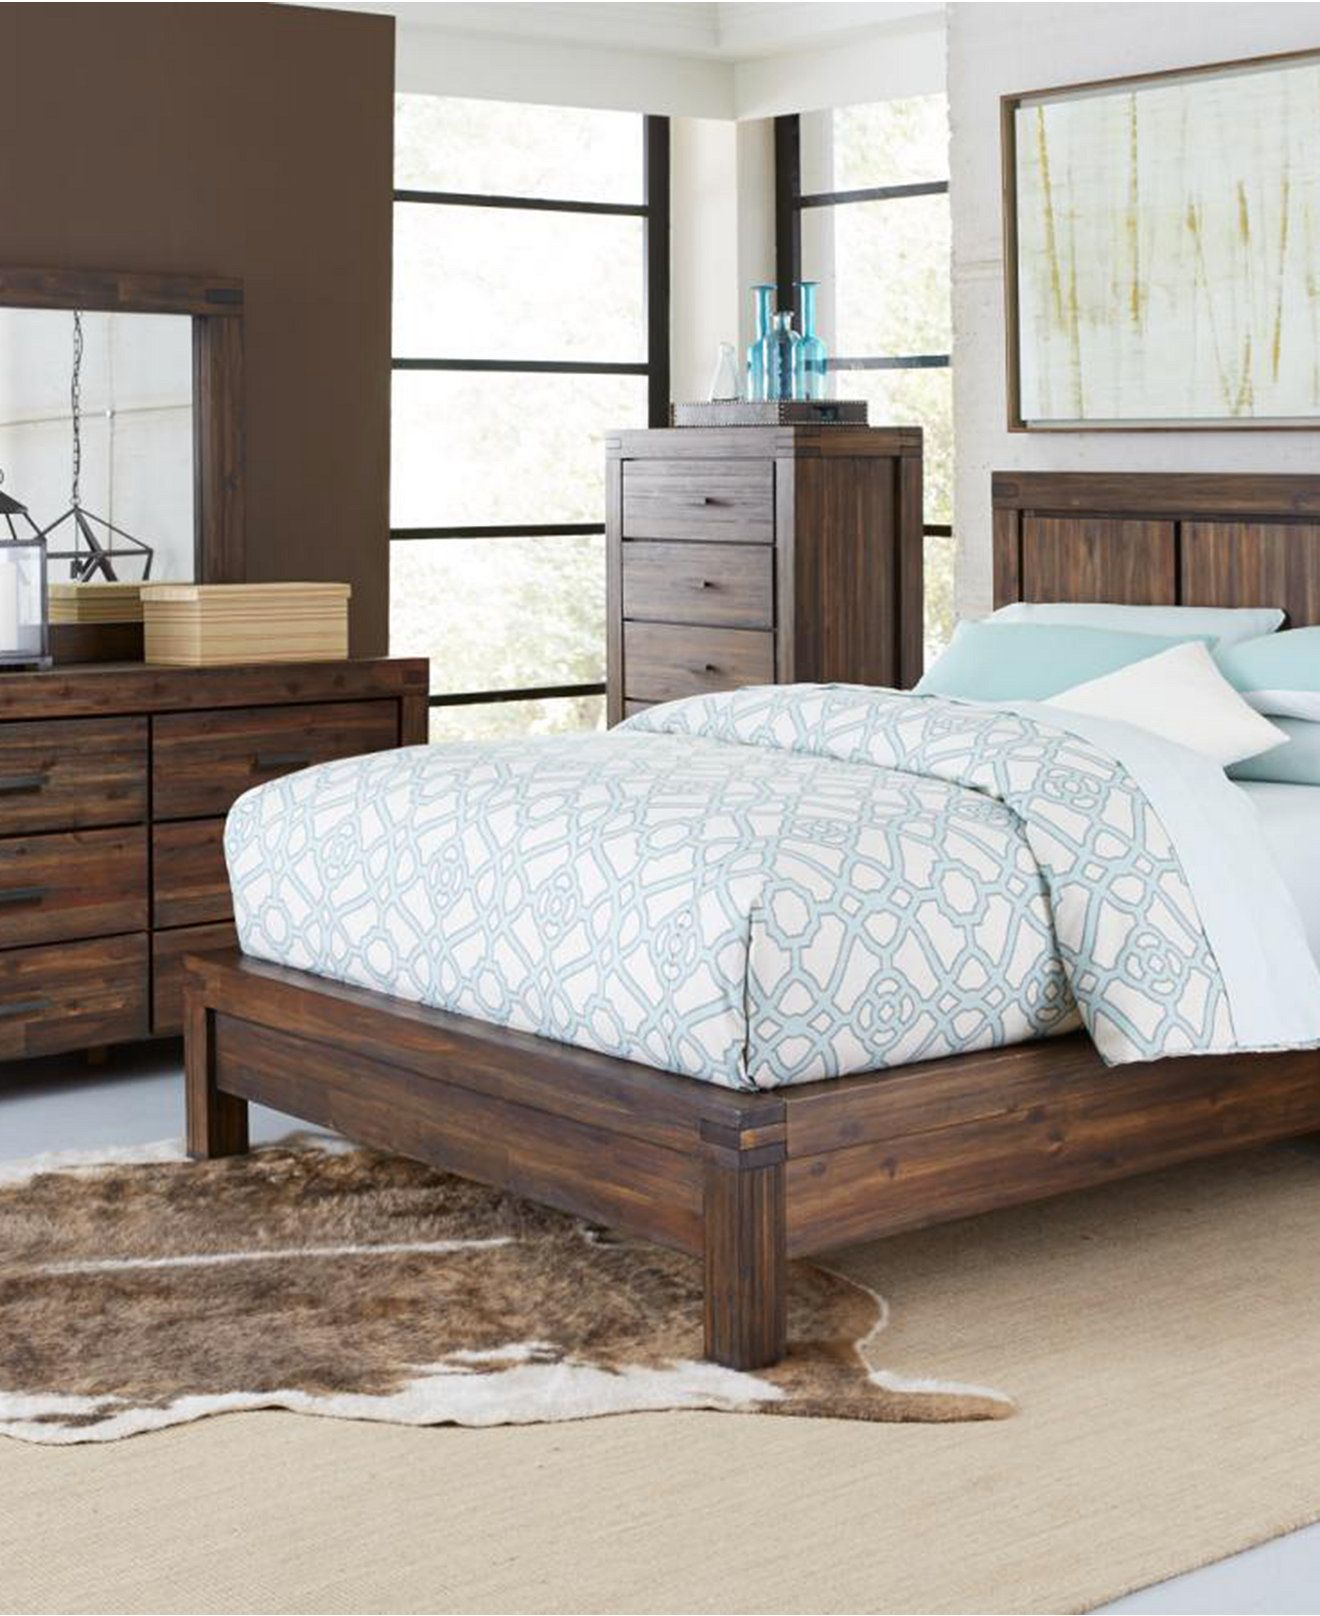 avondale platform bedroom furniture collection lorrie 10654 | a3c9ea26c66c5c7b555100a2812241ce